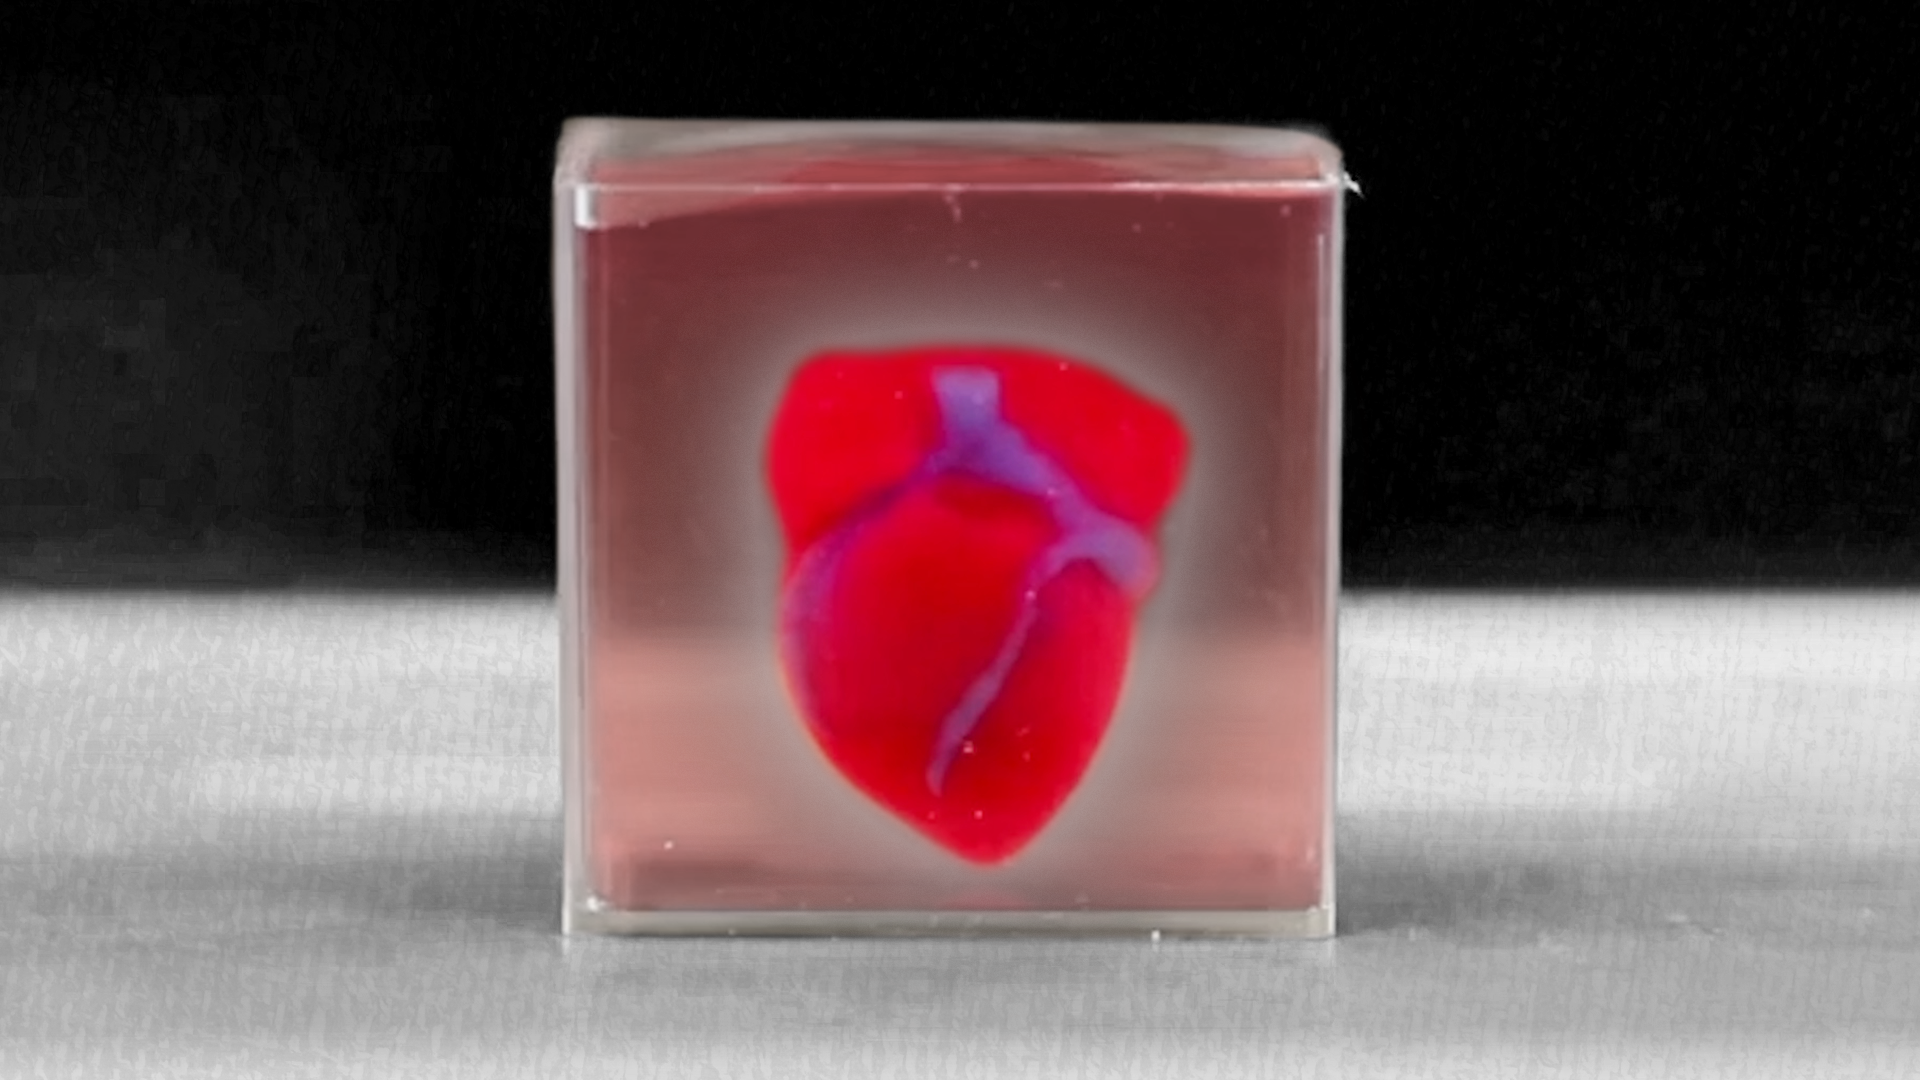 Scientists 3-D-printed a tiny human heart. They hope it can revolutionize transplants.